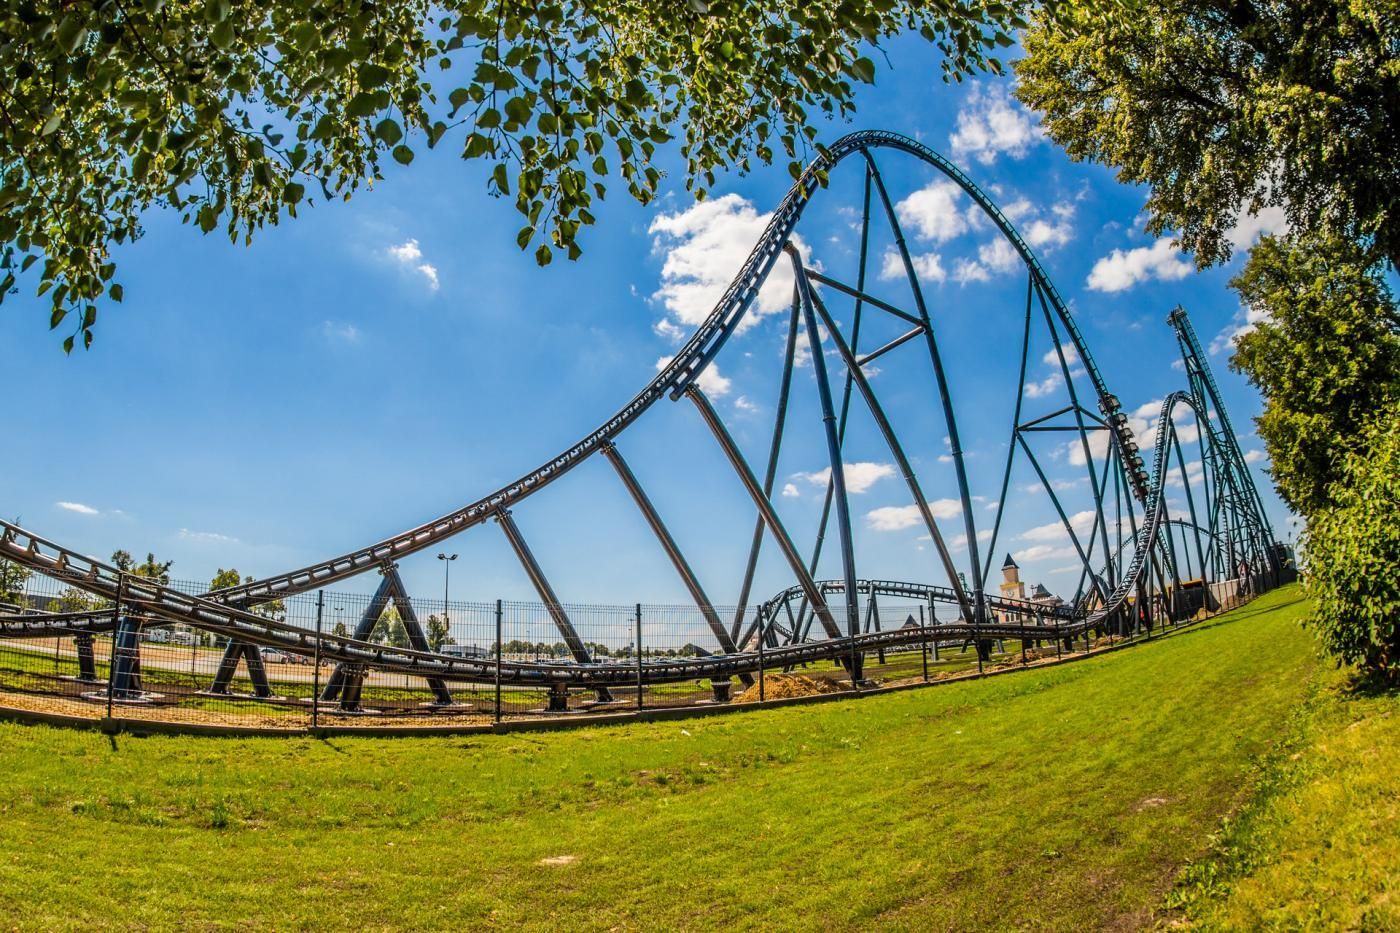 Rollercoaster Hyperion